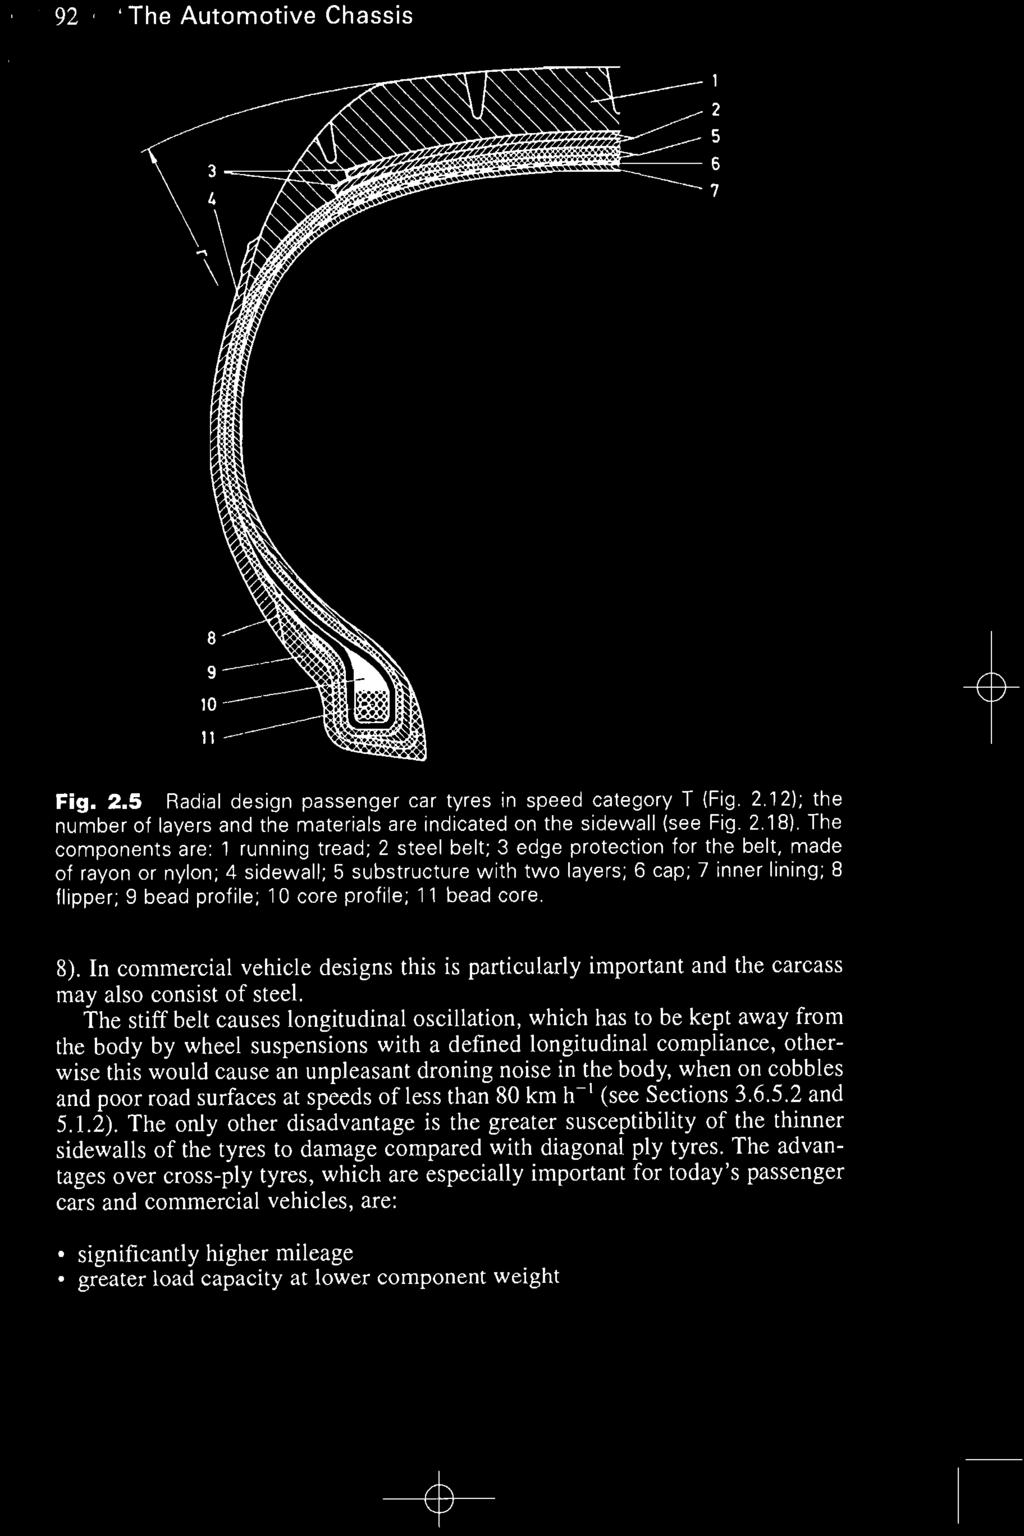 Tyres And Wheels 21 Tyre Requirements Interchangeability Pdf Fig 2 Radialply Tire Rotation Diagram The Automotive Chassis Liiii